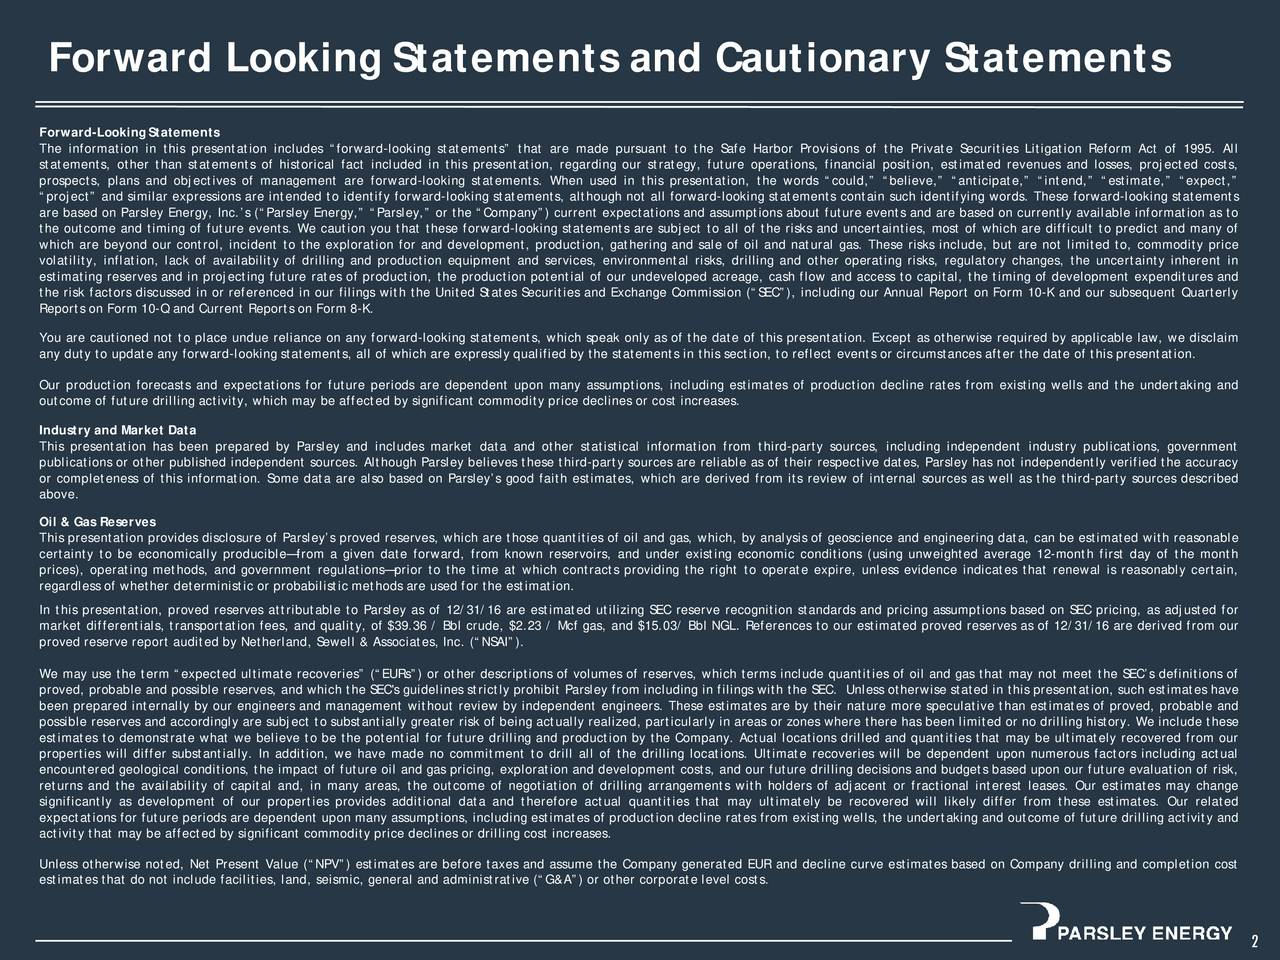 Forward-Looking Statements The information in this presentation includes forward-looking statements that are made pursuant to the Safe Harbor Provisions of the Private Securities Litigation Reform Act of 1995. All statements, other than statements of historical fact included in this presentation, regarding our strategy, future operations, financial position, estimated revenues and losses, projected costs, prospects, plans and objectives of management are forward-looking statements. When used in this presentation, the words could, believe, anticipate, intend, estimate, expect, project and similar expressions are intended to identify forward-looking statements, although not all forward-looking statements contain such identifying words. These forward-looking statements are based on Parsley Energy, Inc.s (Parsley Energy, Parsley, or the Company) current expectations and assumptions about future events and are based on currently available information as to the outcome and timing of future events. We caution you that these forward-looking statements are subject to all of the risks and uncertainties, most of which are difficult to predict and many of which are beyond our control, incident to the exploration for and development, production, gathering and sale of oil and natural gas. These risks include, but are not limited to, commodity price volatility, inflation, lack of availability of drilling and production equipment and services, environmental risks, drilling and other operating risks, regulatory changes, the uncertainty inherent in estimating reserves and in projecting future rates of production, the production potential of our undeveloped acreage, cash flow and access to capital, the timing of development expenditures and the risk factors discussed in or referenced in our filings with the United States Securities and Exchange Commission (SEC), including our Annual Report on Form 10-K and our subsequent Quarterly Reports on Form 10-Q and Current Reports on Form 8-K. 